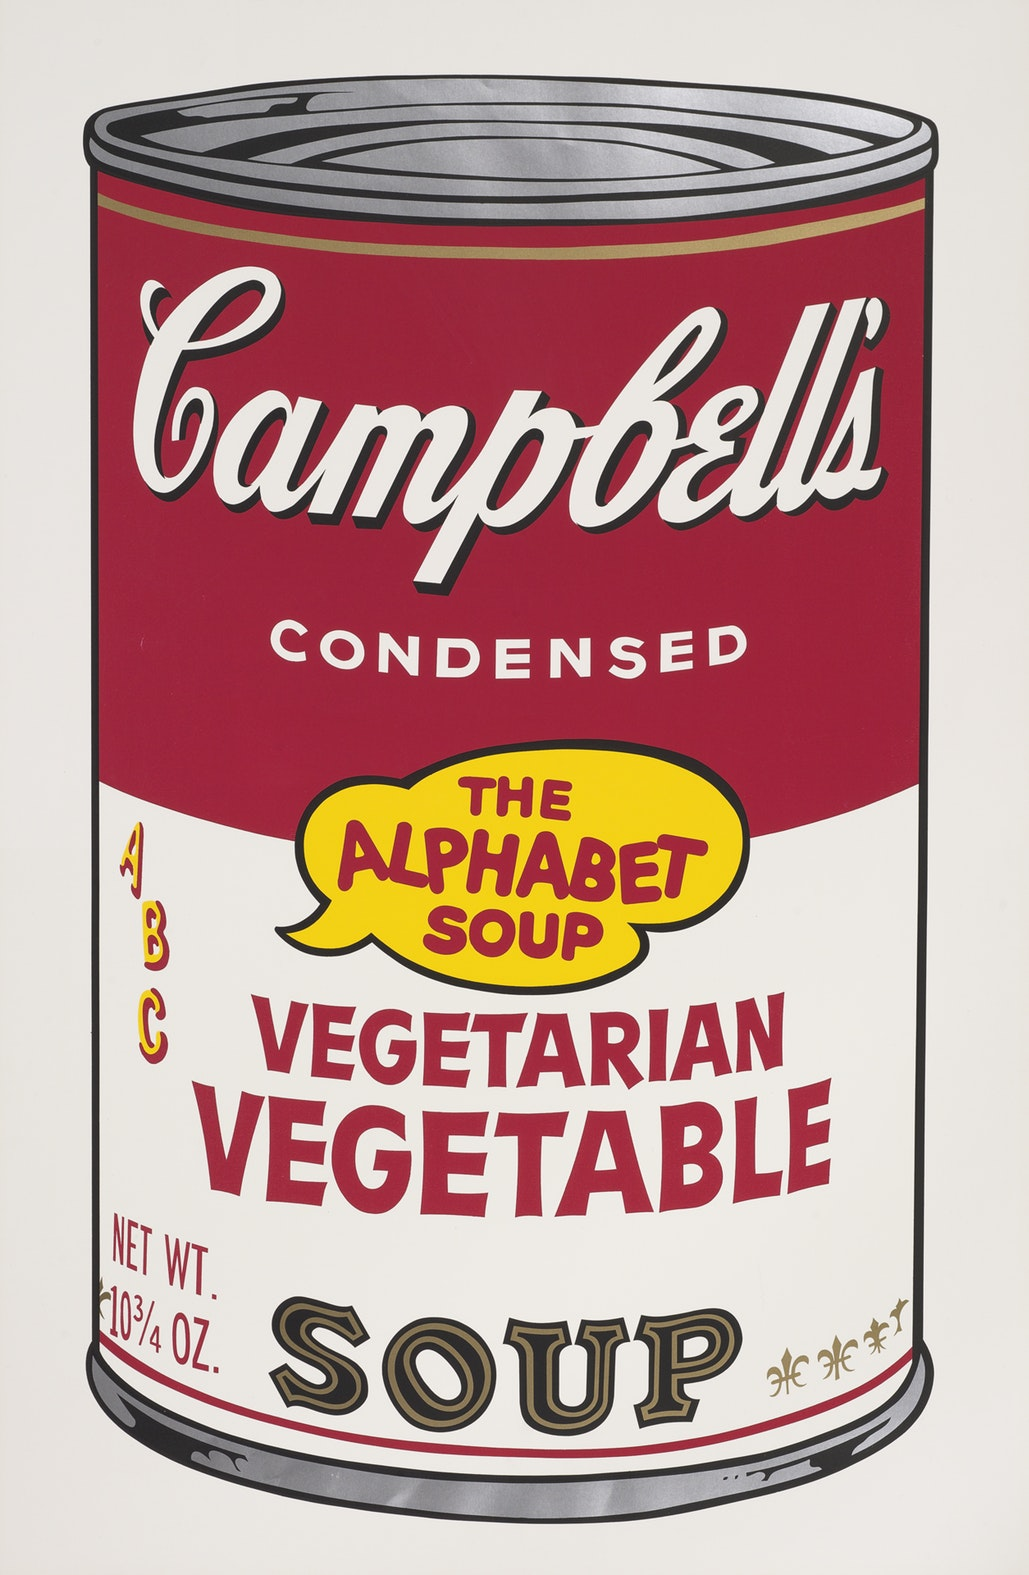 untitled [Vegetarian Vegetable] from Campbell's Soup II, Andy Warhol, 1969